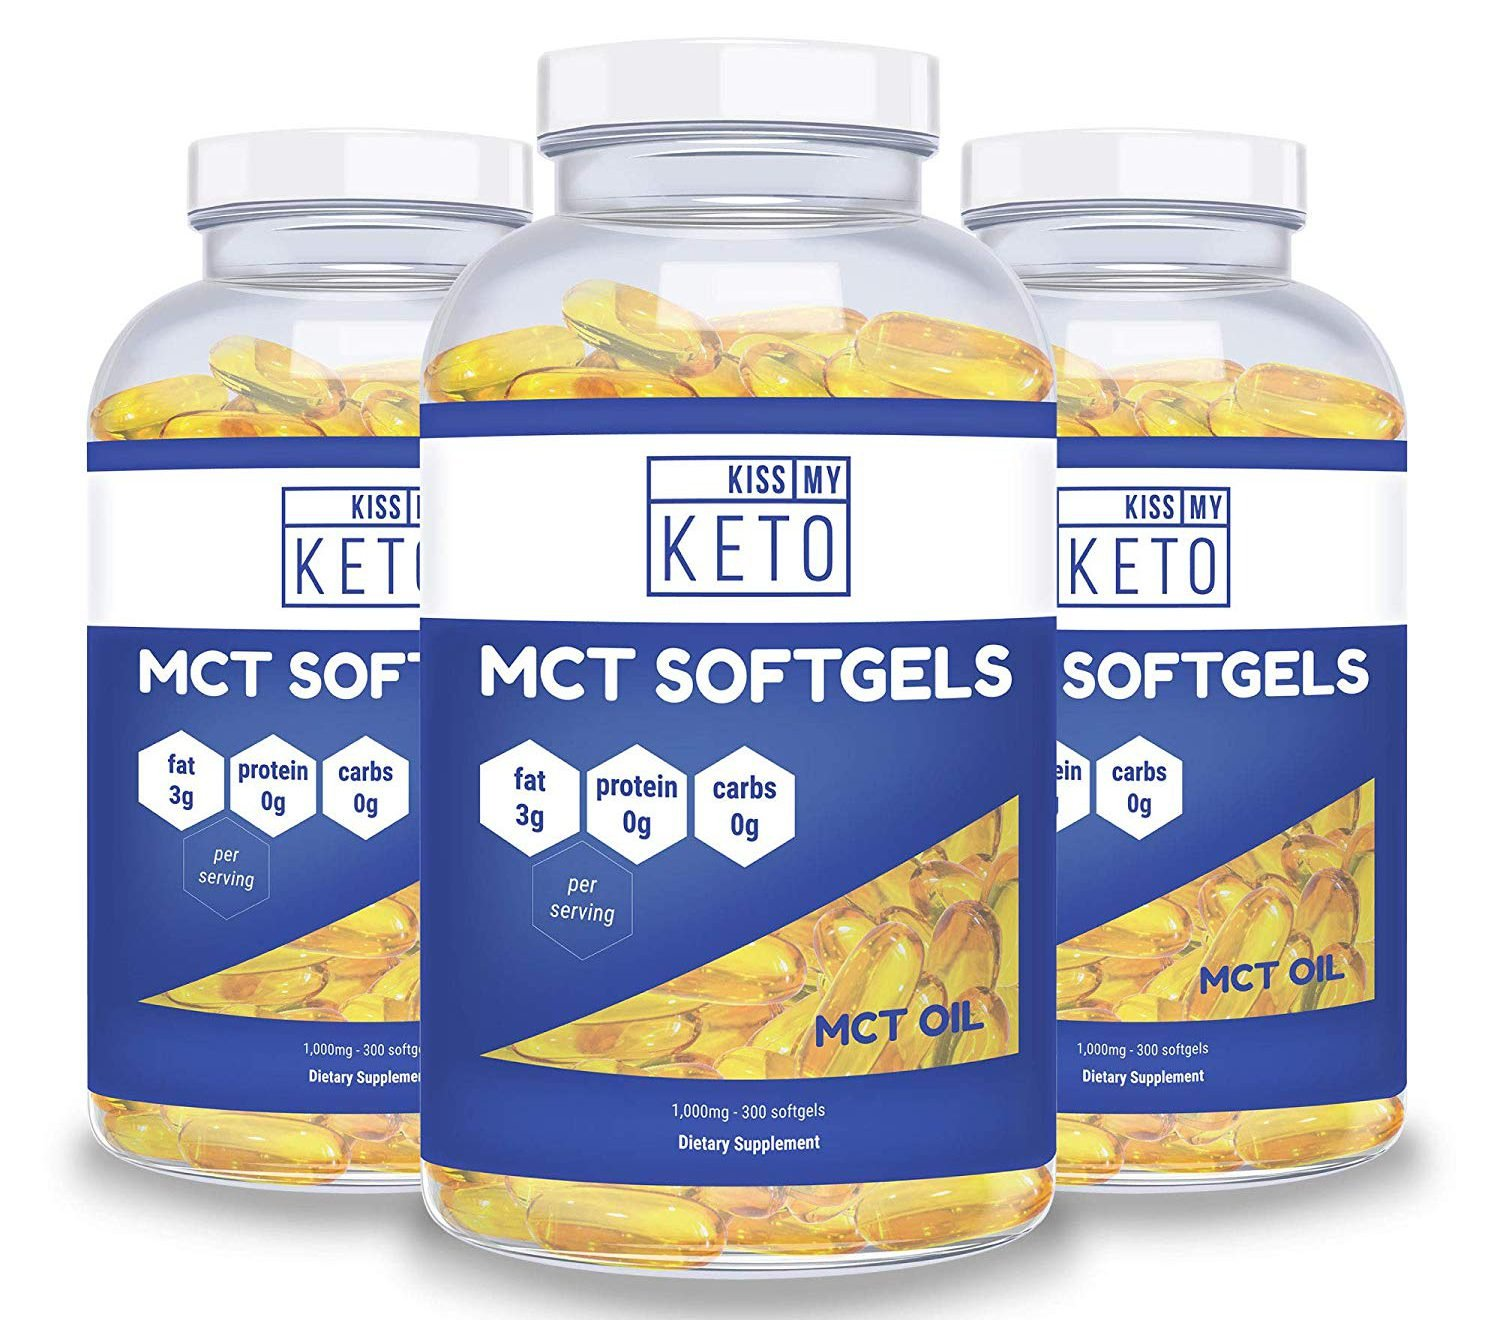 Kiss My Keto MCT Oil Capsules